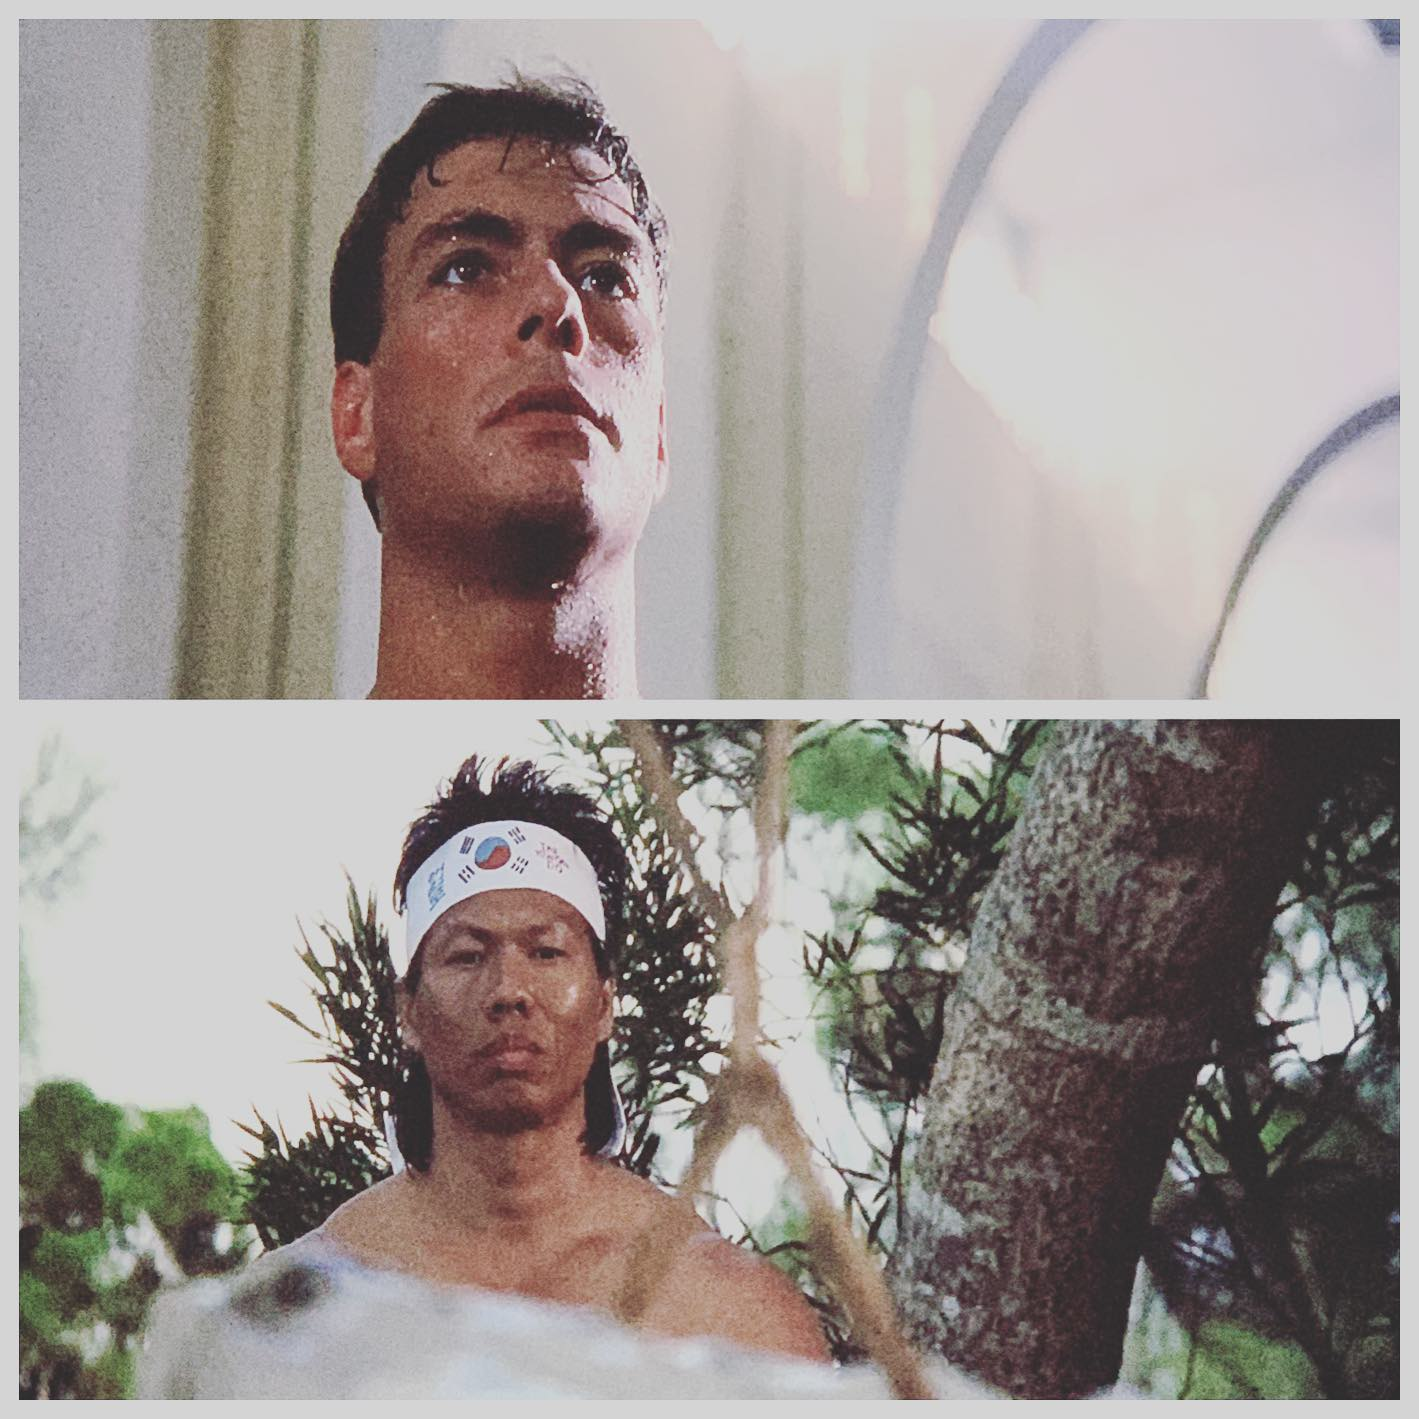 Kumite. A thanksgiving tradition. @jcvd